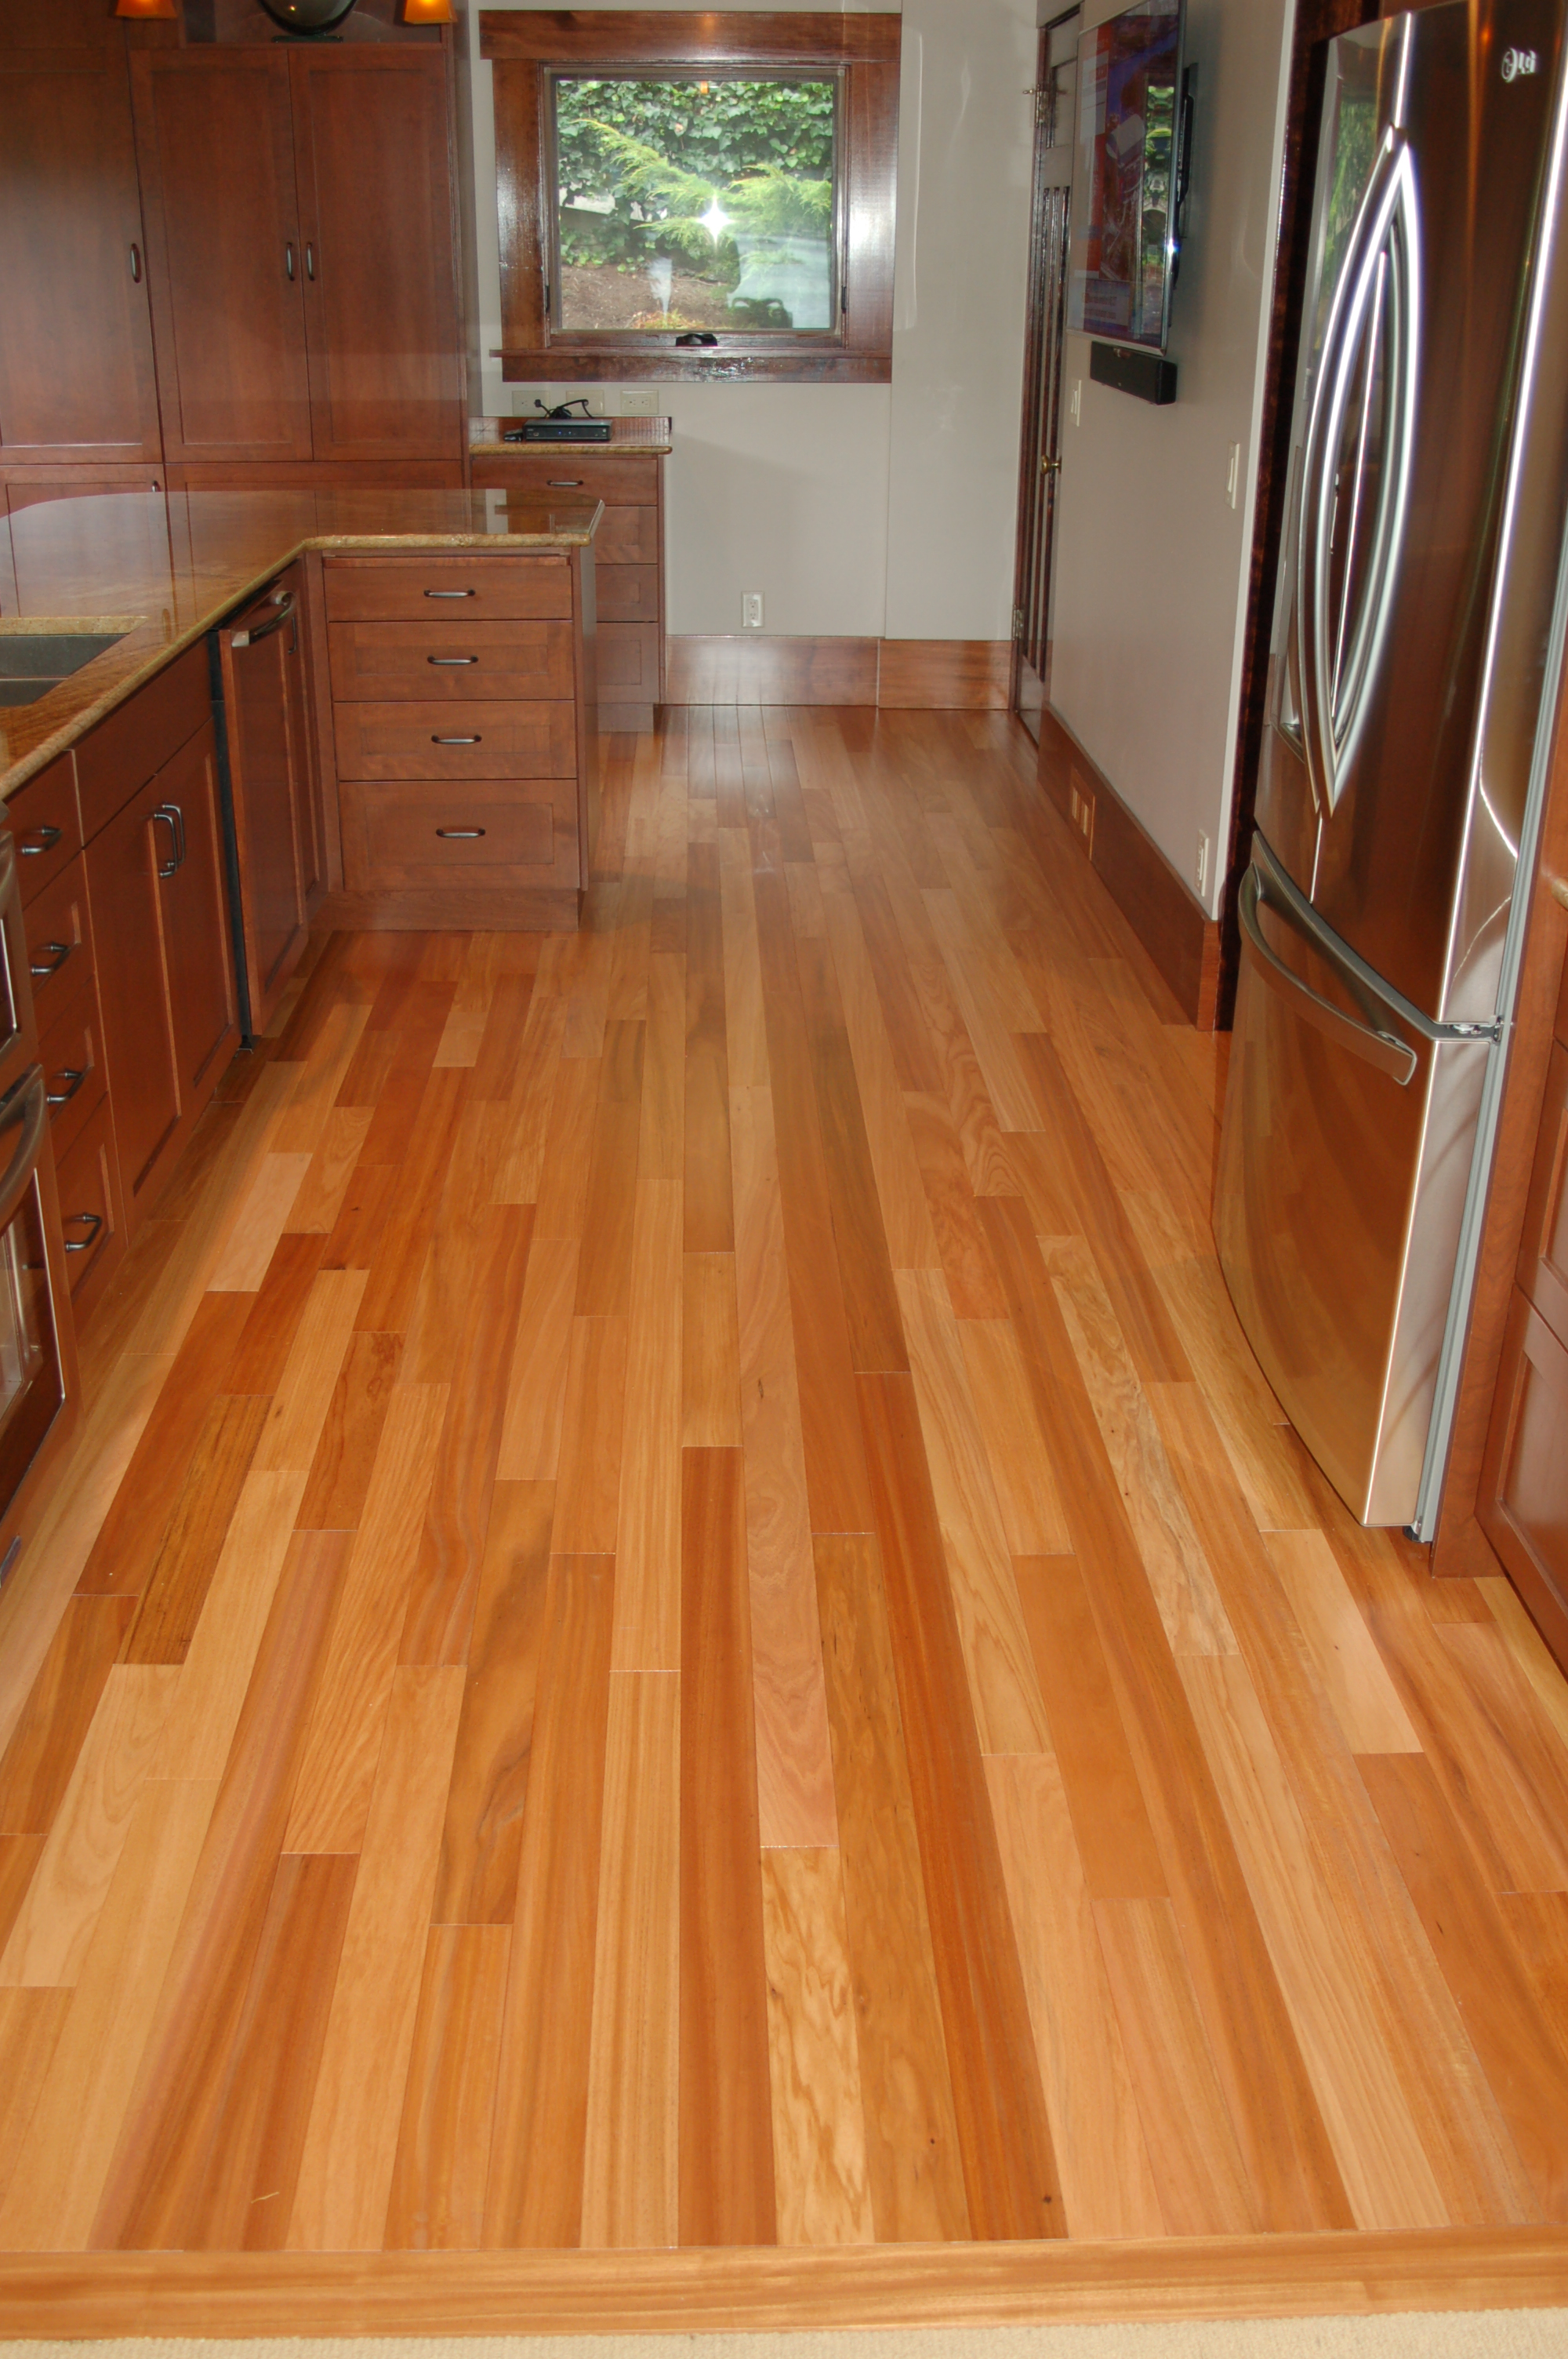 kitchen remodel part ii of iv choosing the best flooring kitchen floor options Kitchen remodel Part II of IV Choosing the best flooring